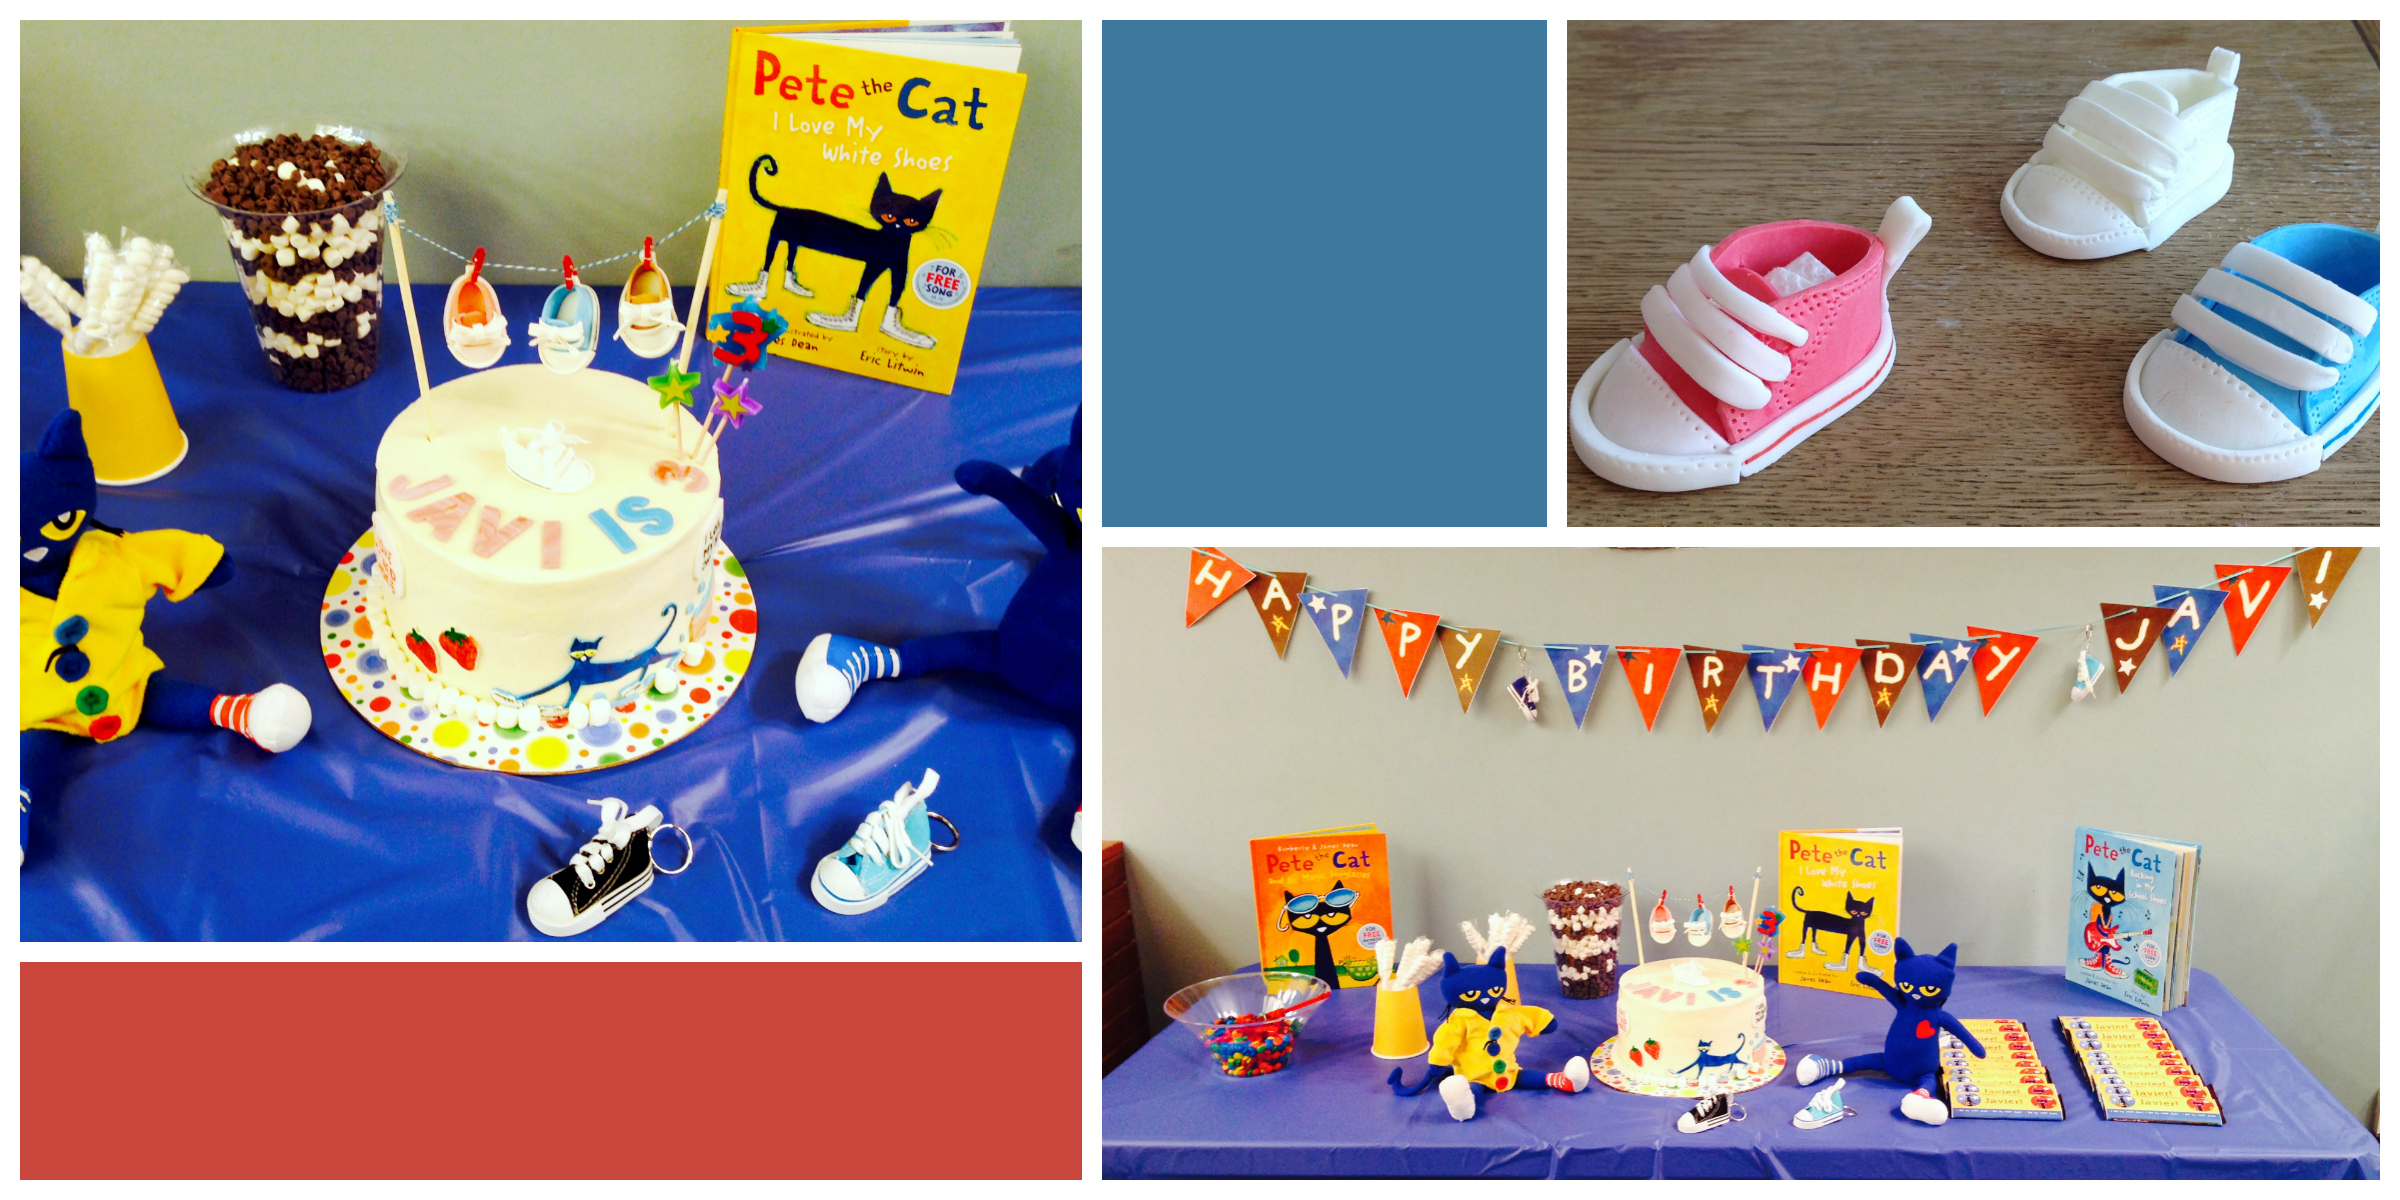 Pete the Cat Collage.jpg